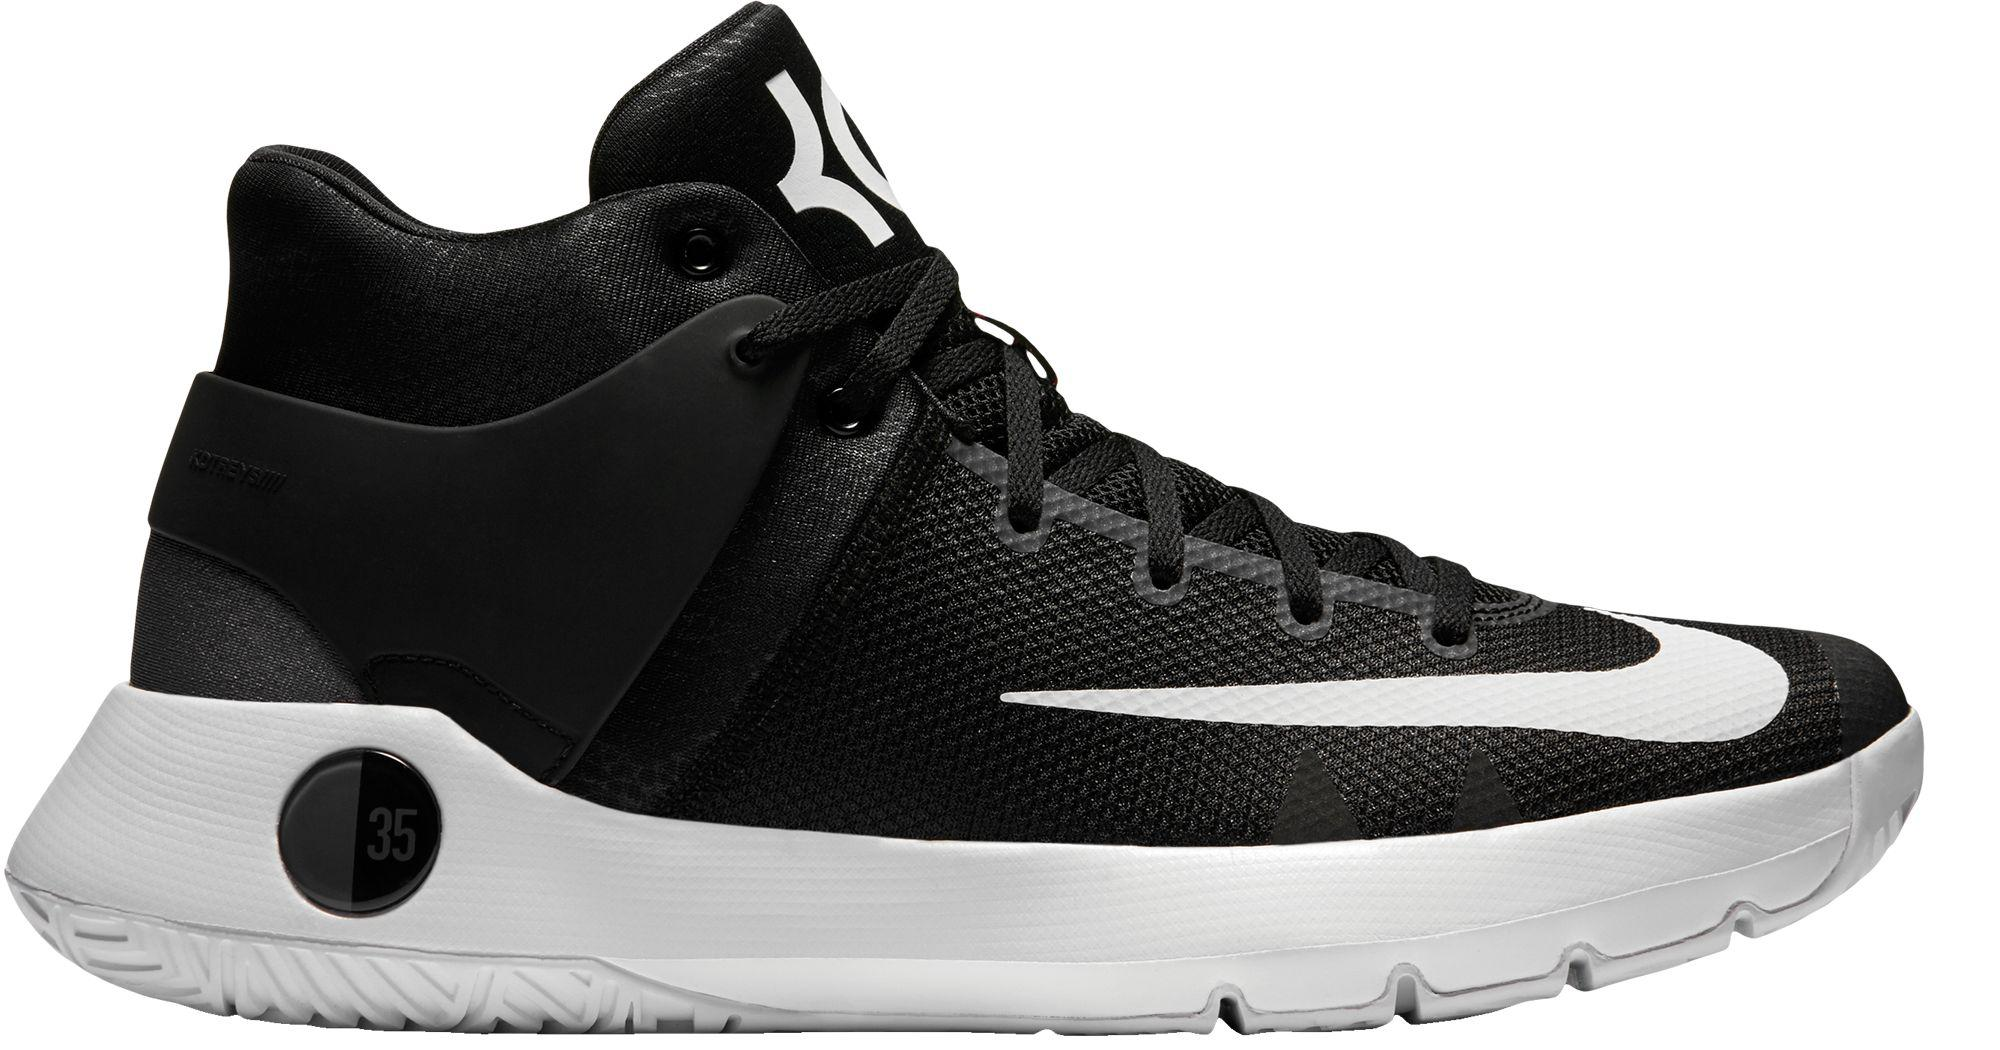 promo code 9737c d6915 Nike Kd Trey 5 Iv Basketball Shoes in Black for Men - Lyst